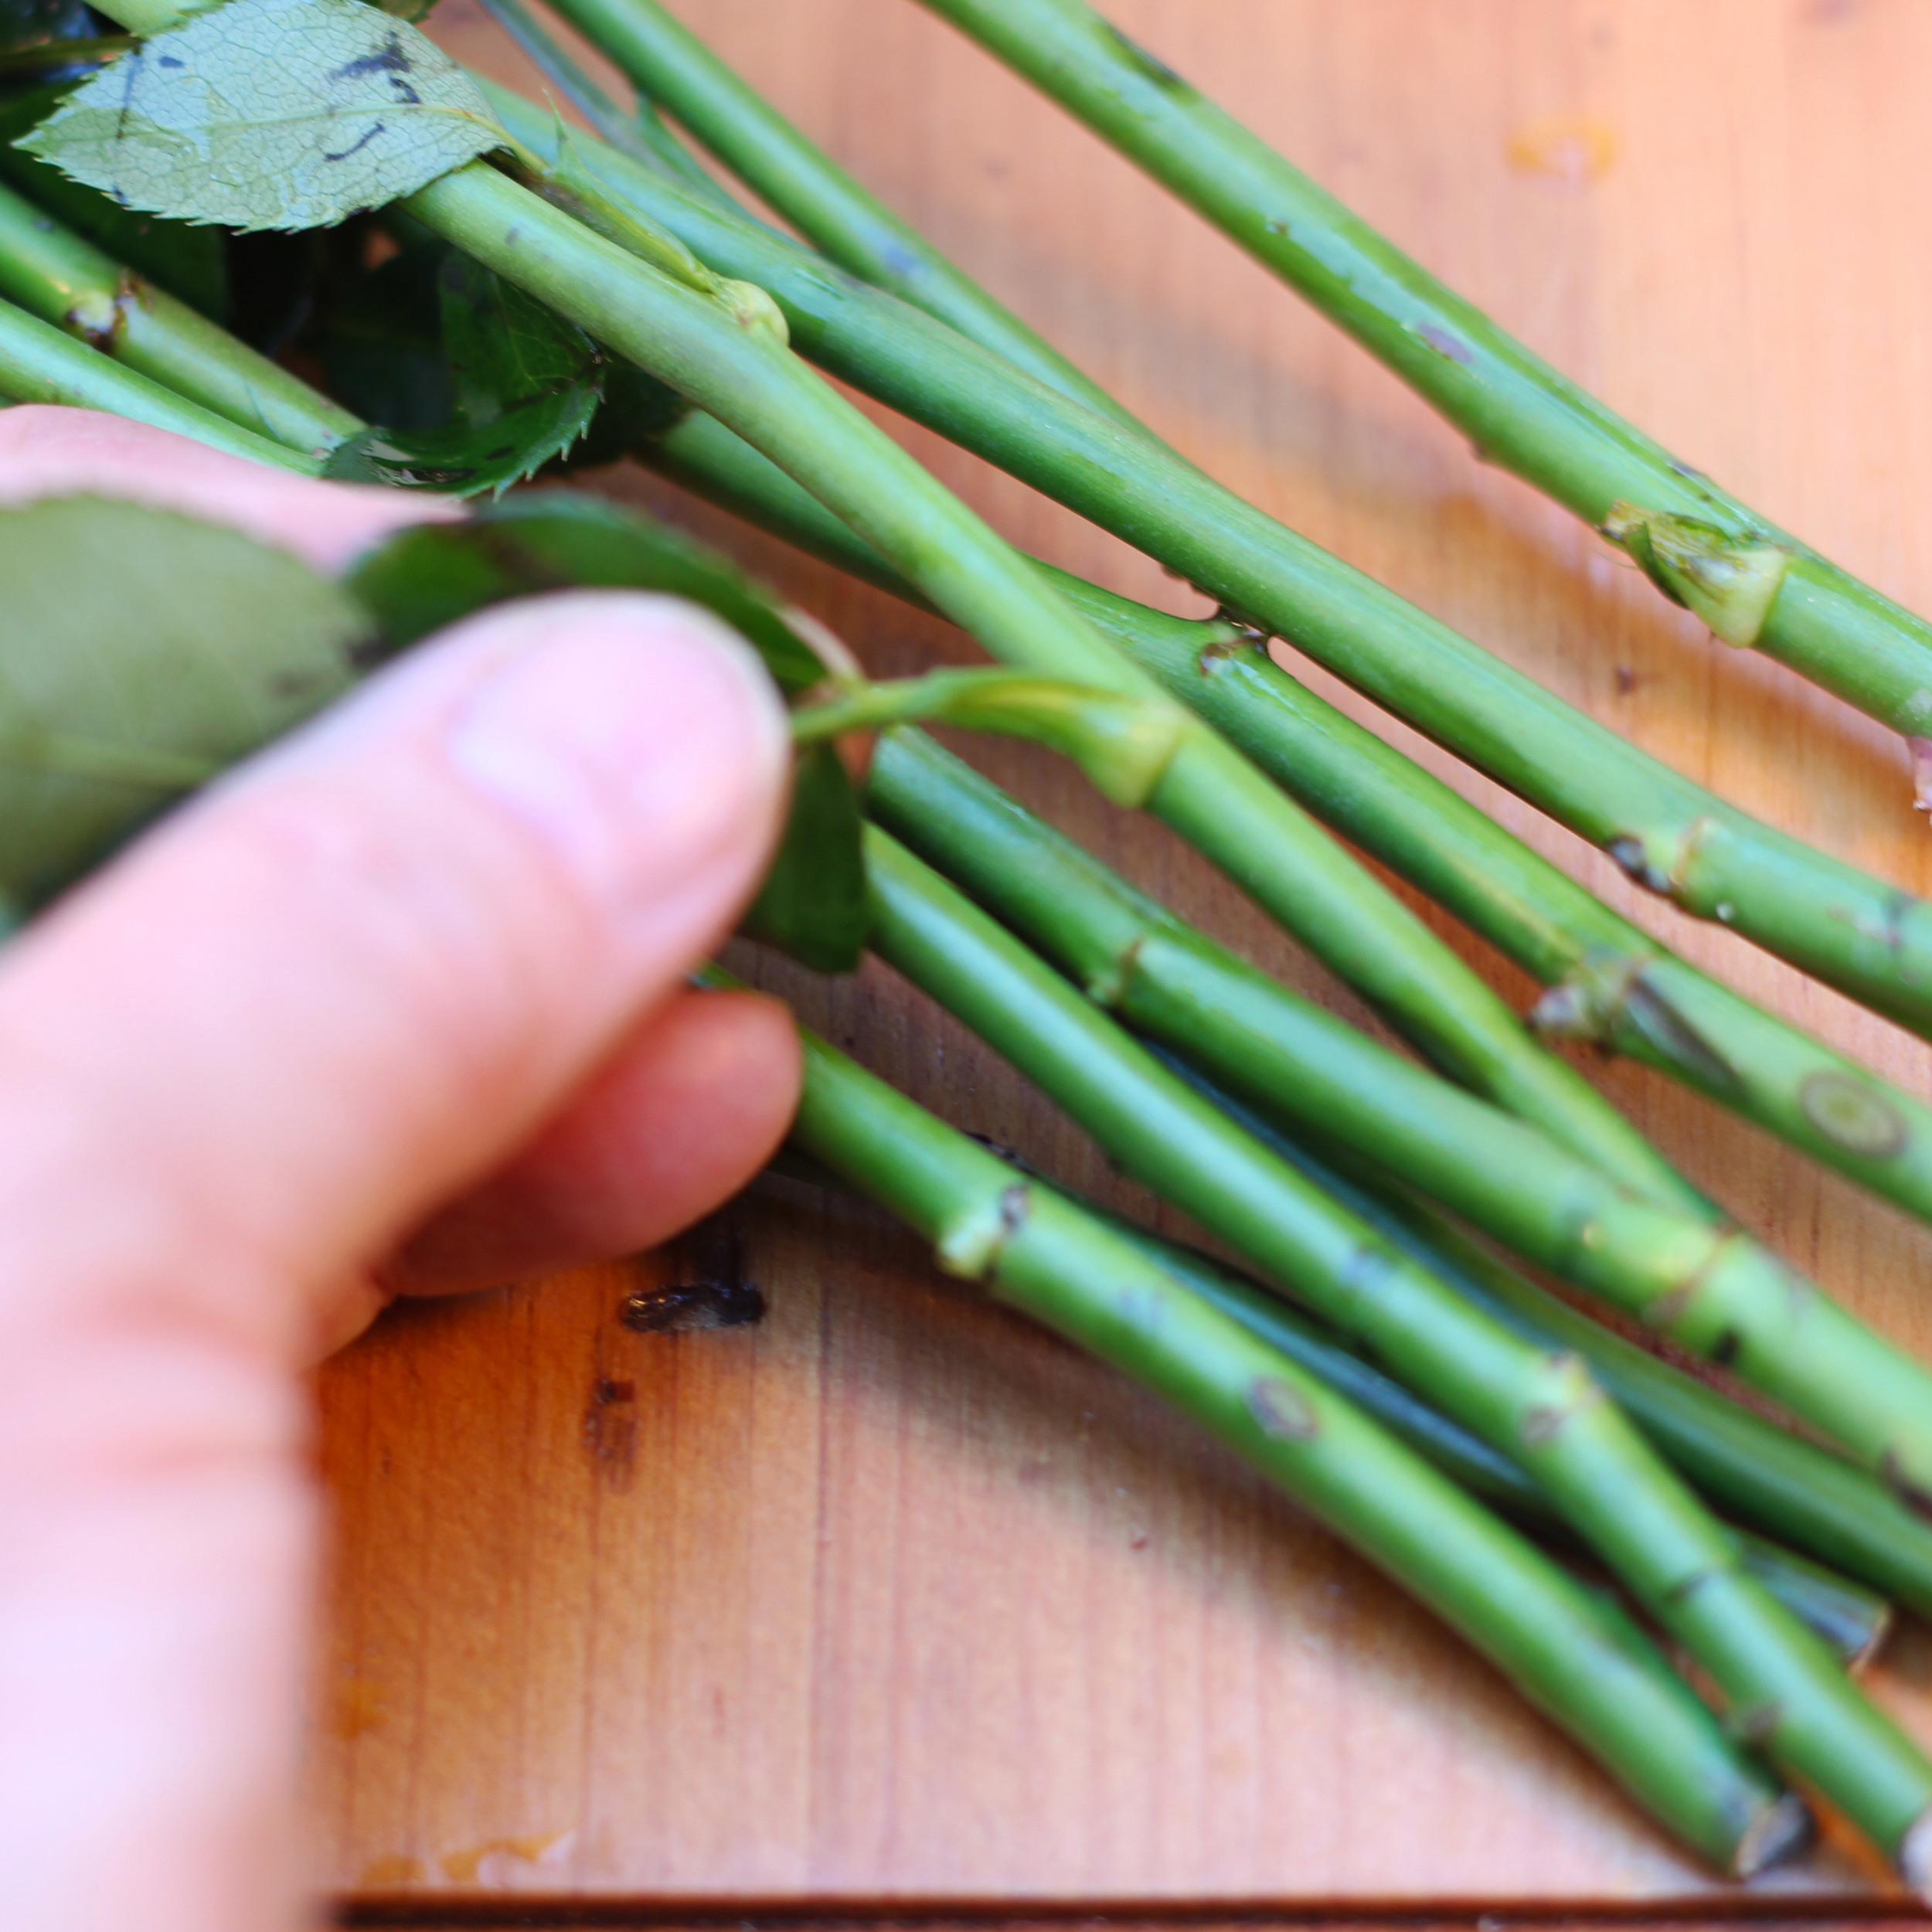 Break off any thorns on rose stems with your thumb. Remove leaves below water line.